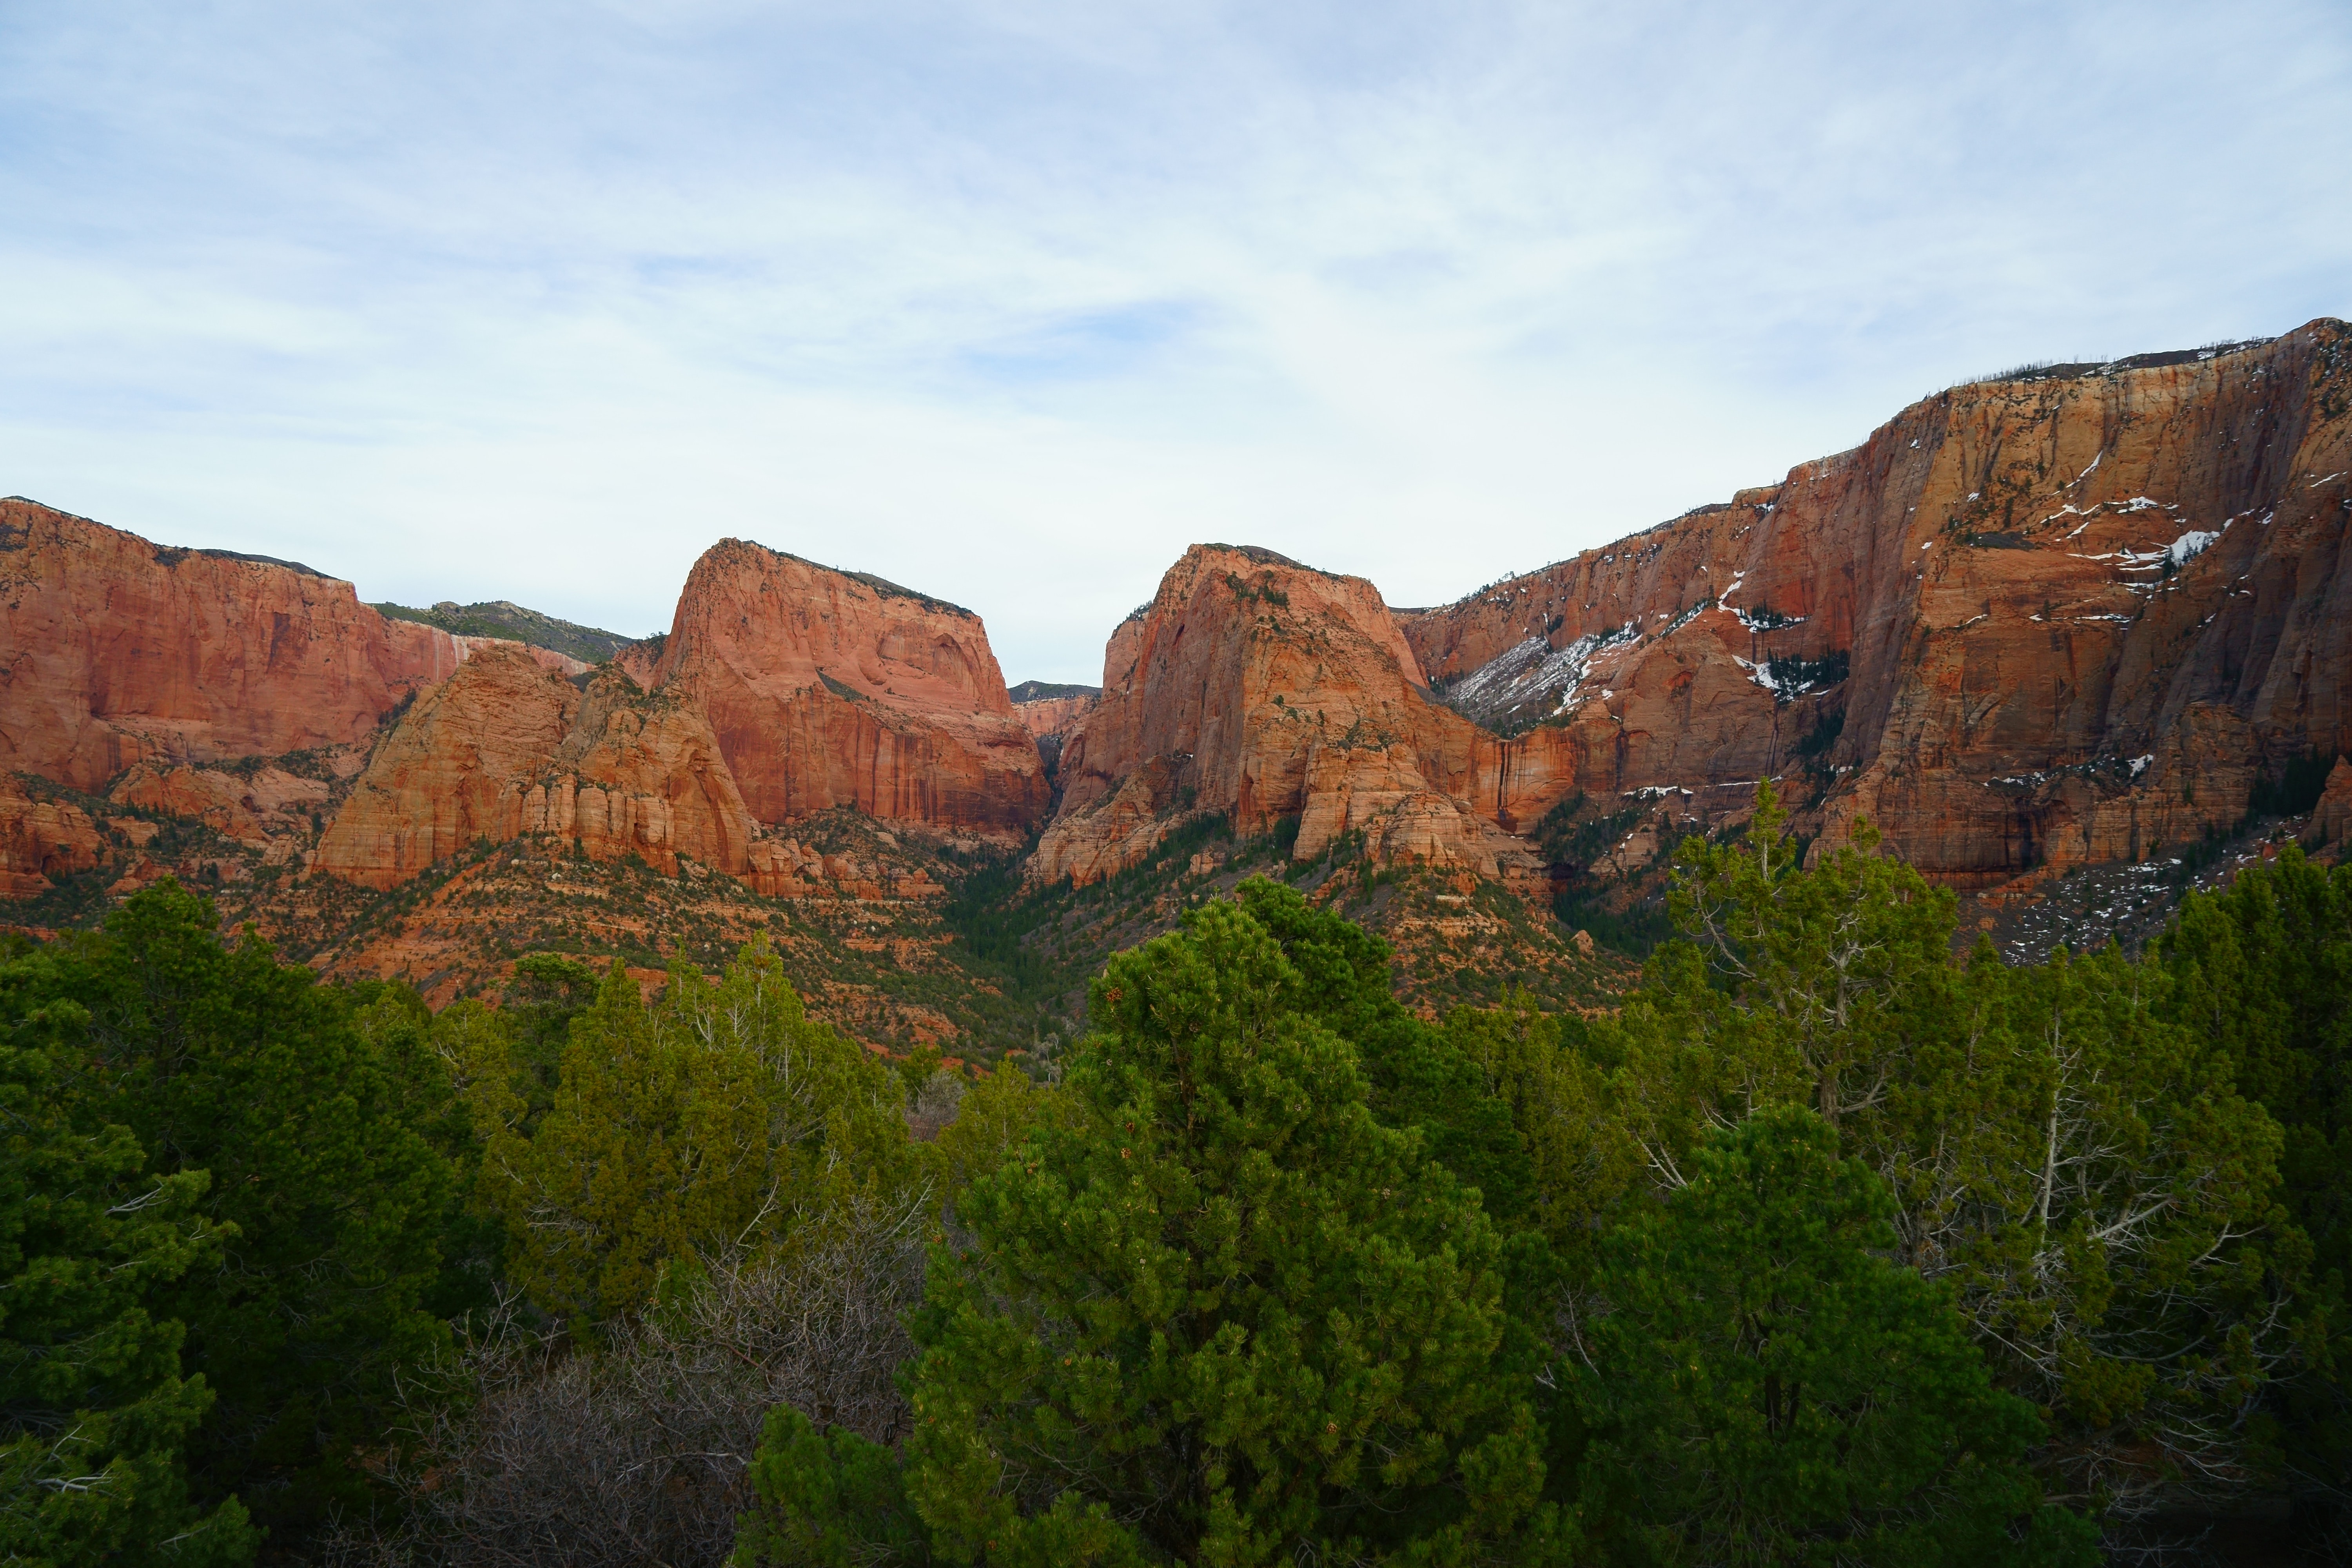 Green trees near red cliffs in Kolob Canyons